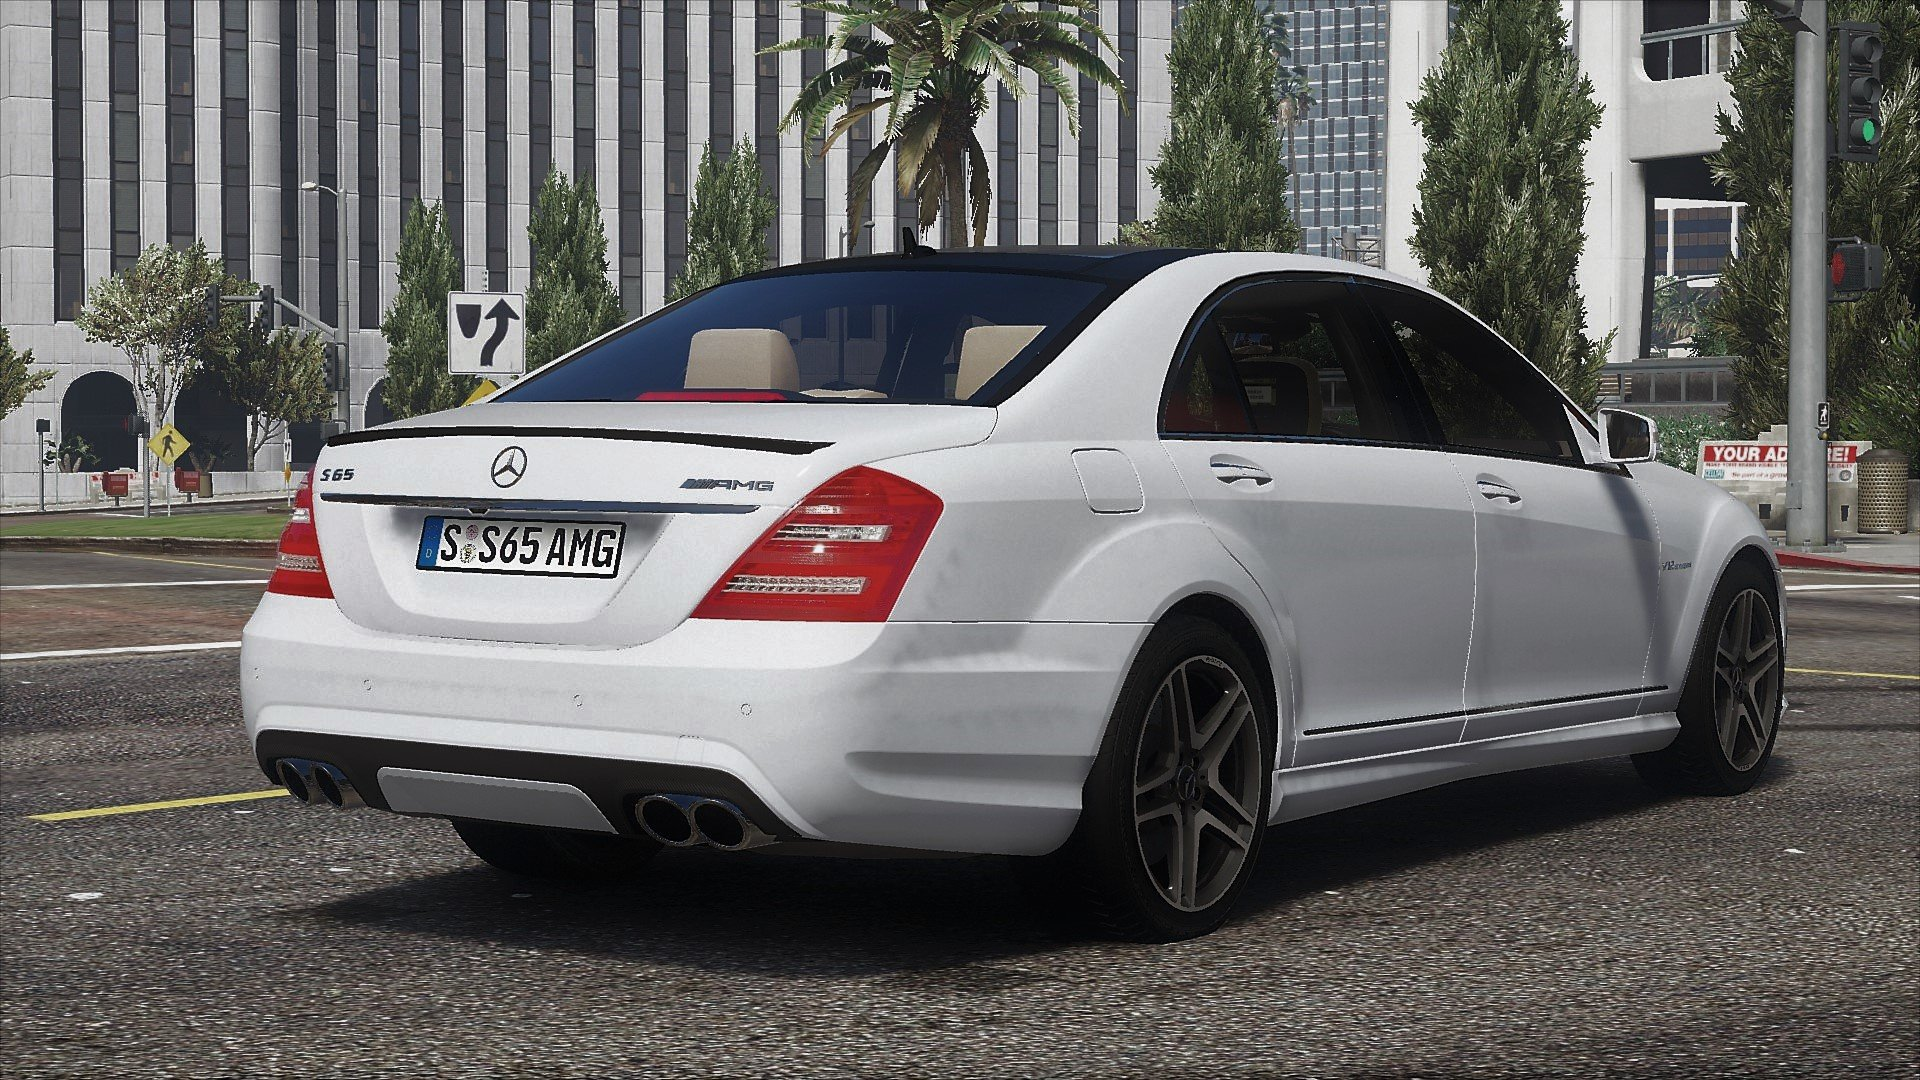 2012 mercedes benz s65 amg w221 add on tuning gta5 for Mercedes benz s65 amg